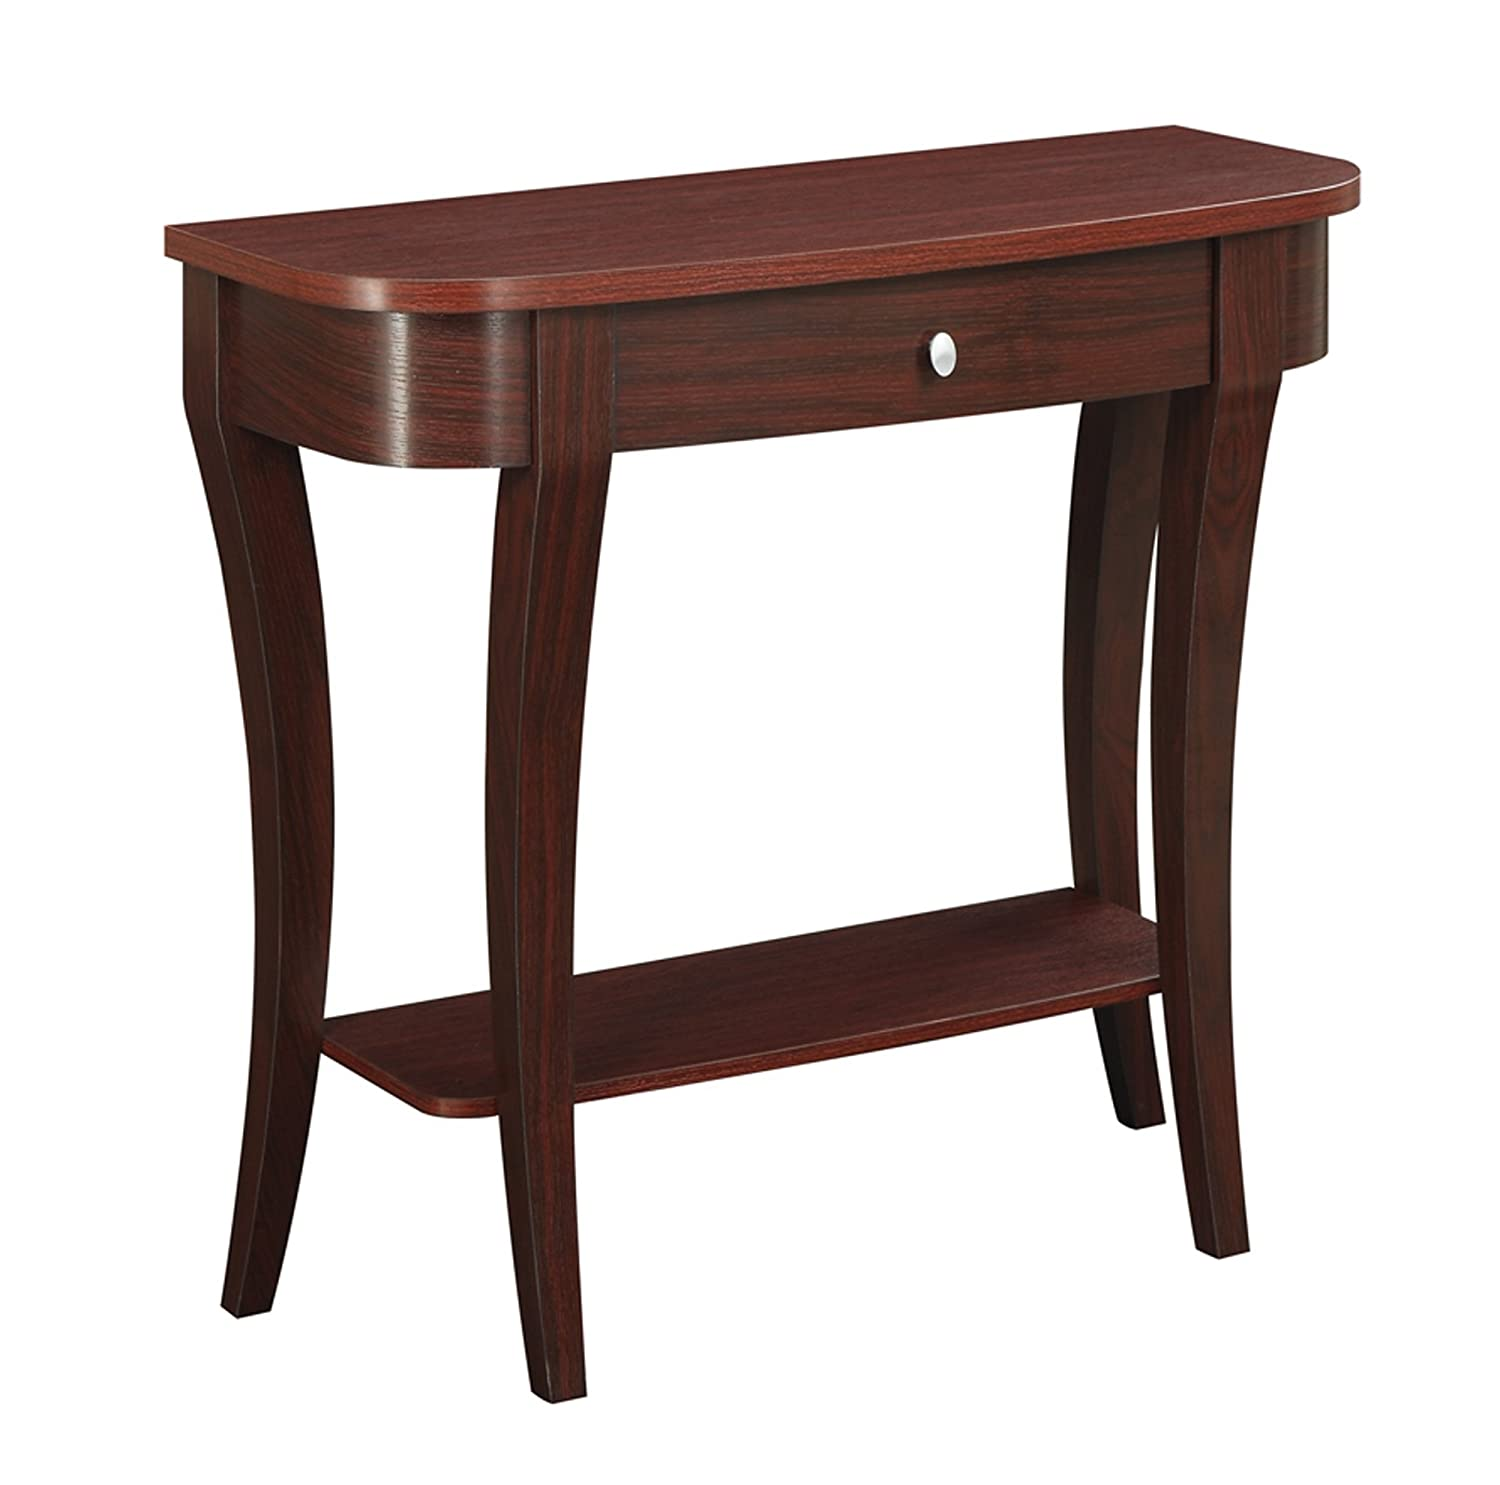 Nice Amazon.com: Convenience Concepts Modern Newport Console Table, Mahogany:  Kitchen U0026 Dining